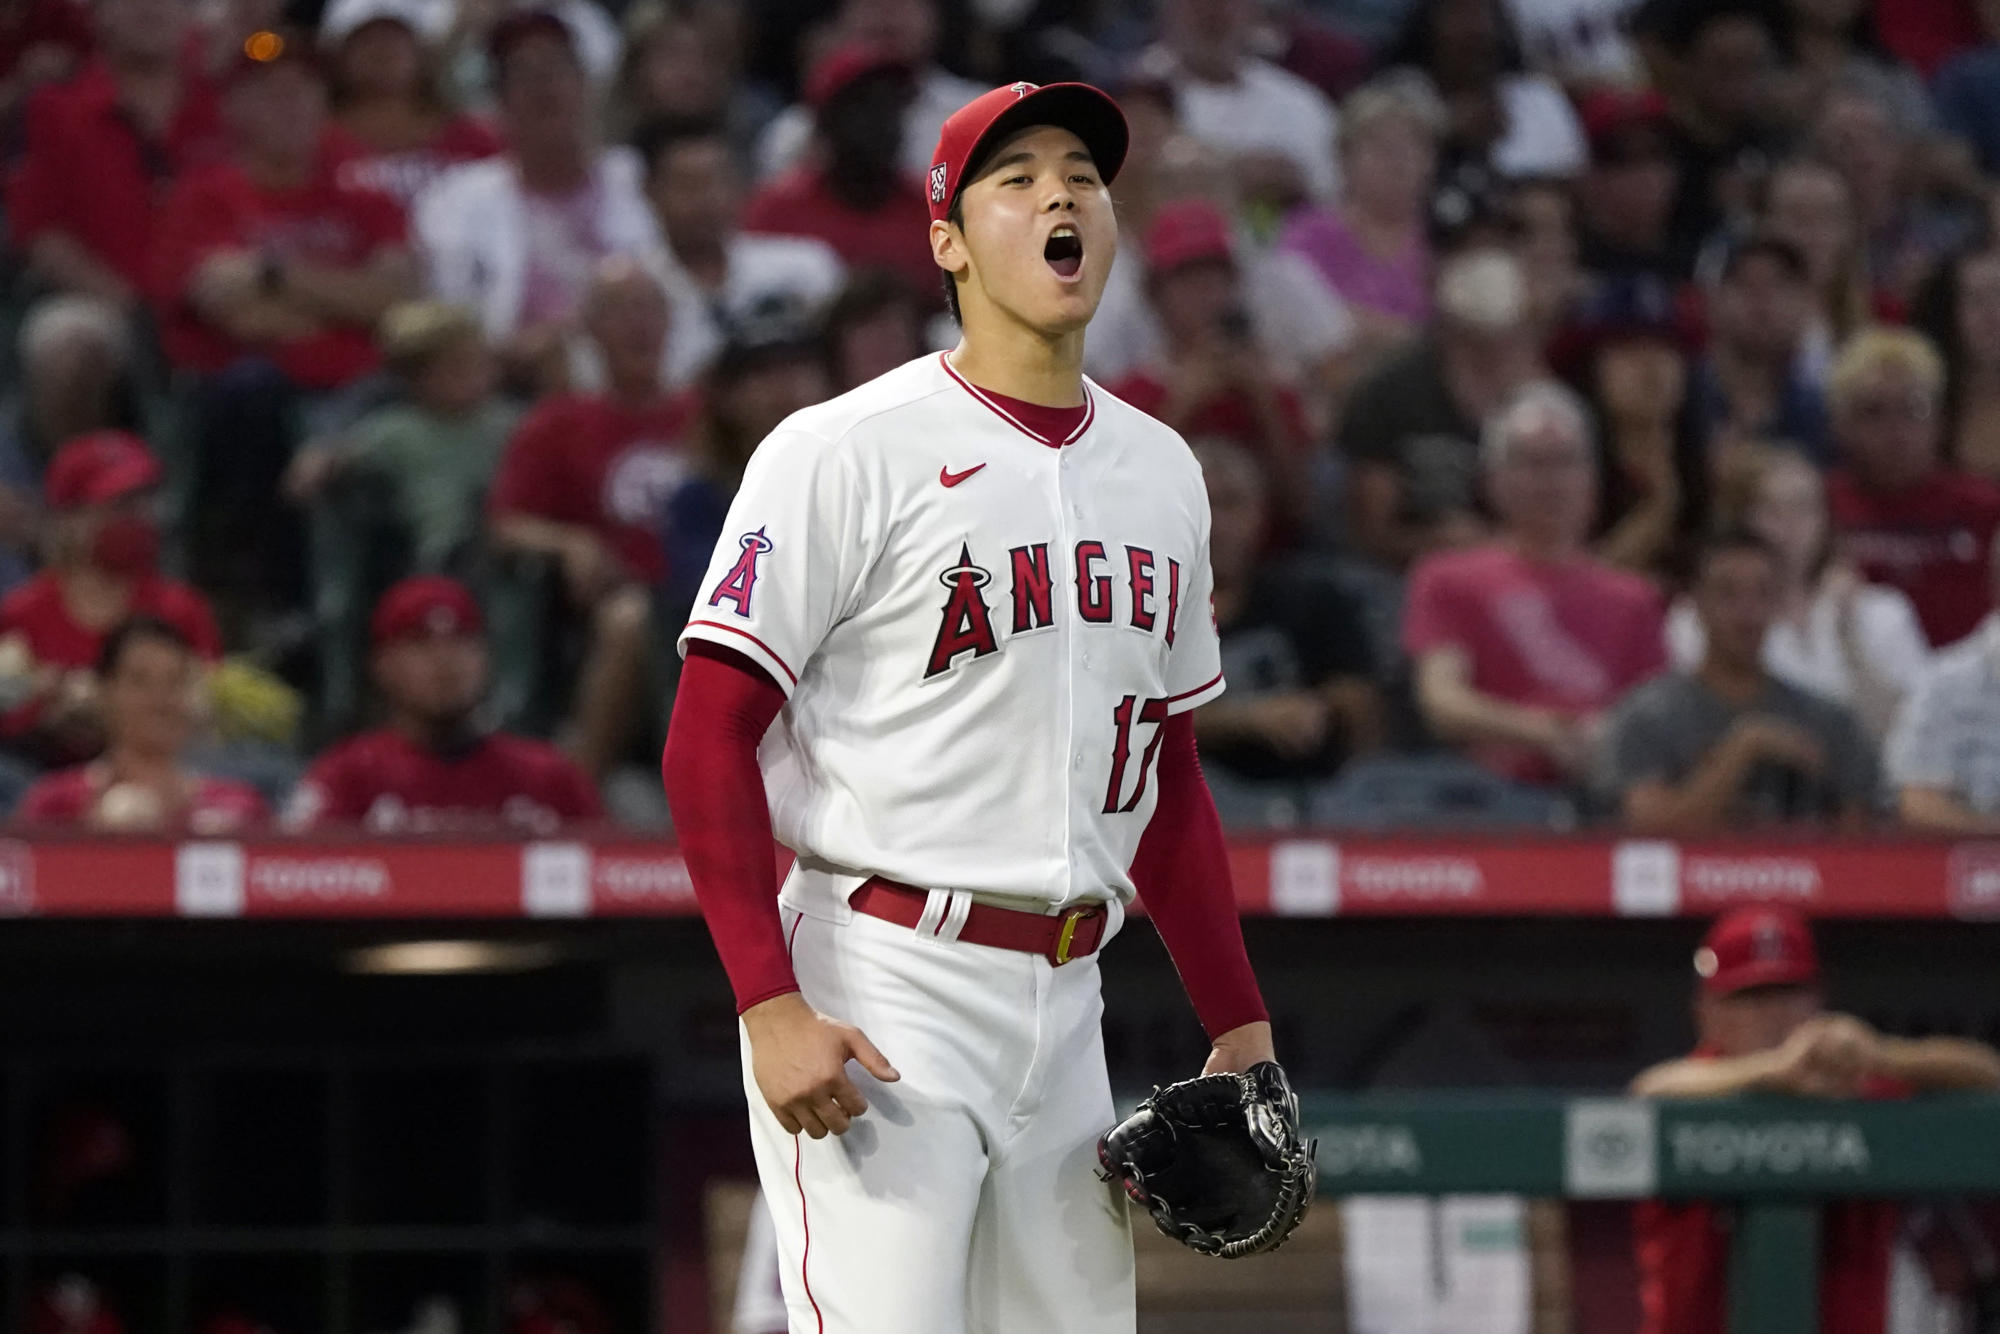 Ohtani hurls 6 innings, doubles in Angels' 6-3 win over Jays